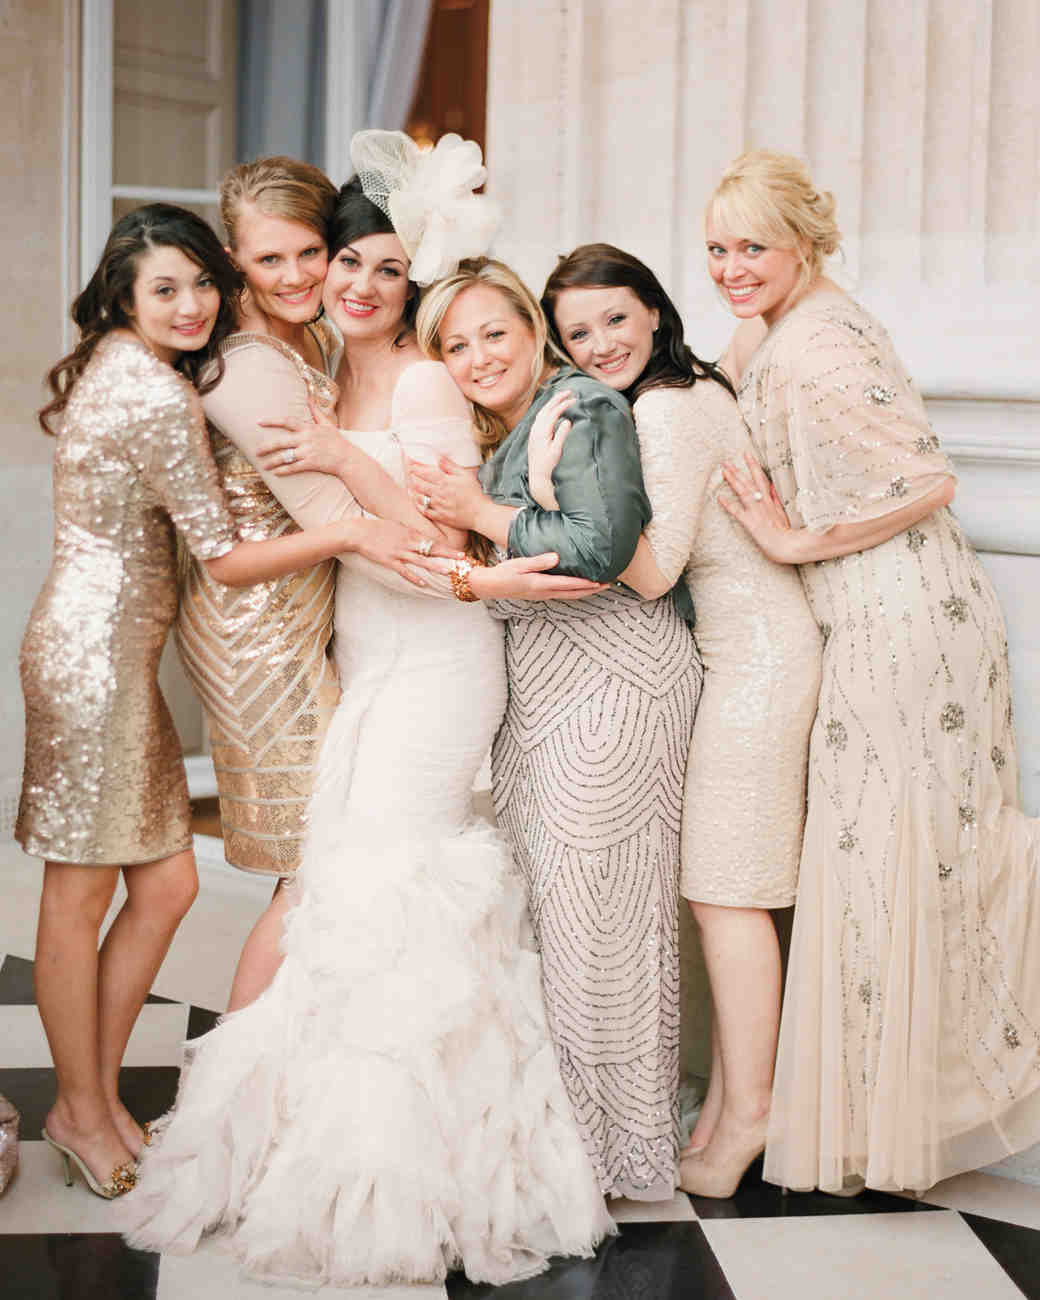 Martha Stewart Weddings: 12 New Rules For Dressing Your Bridesmaids